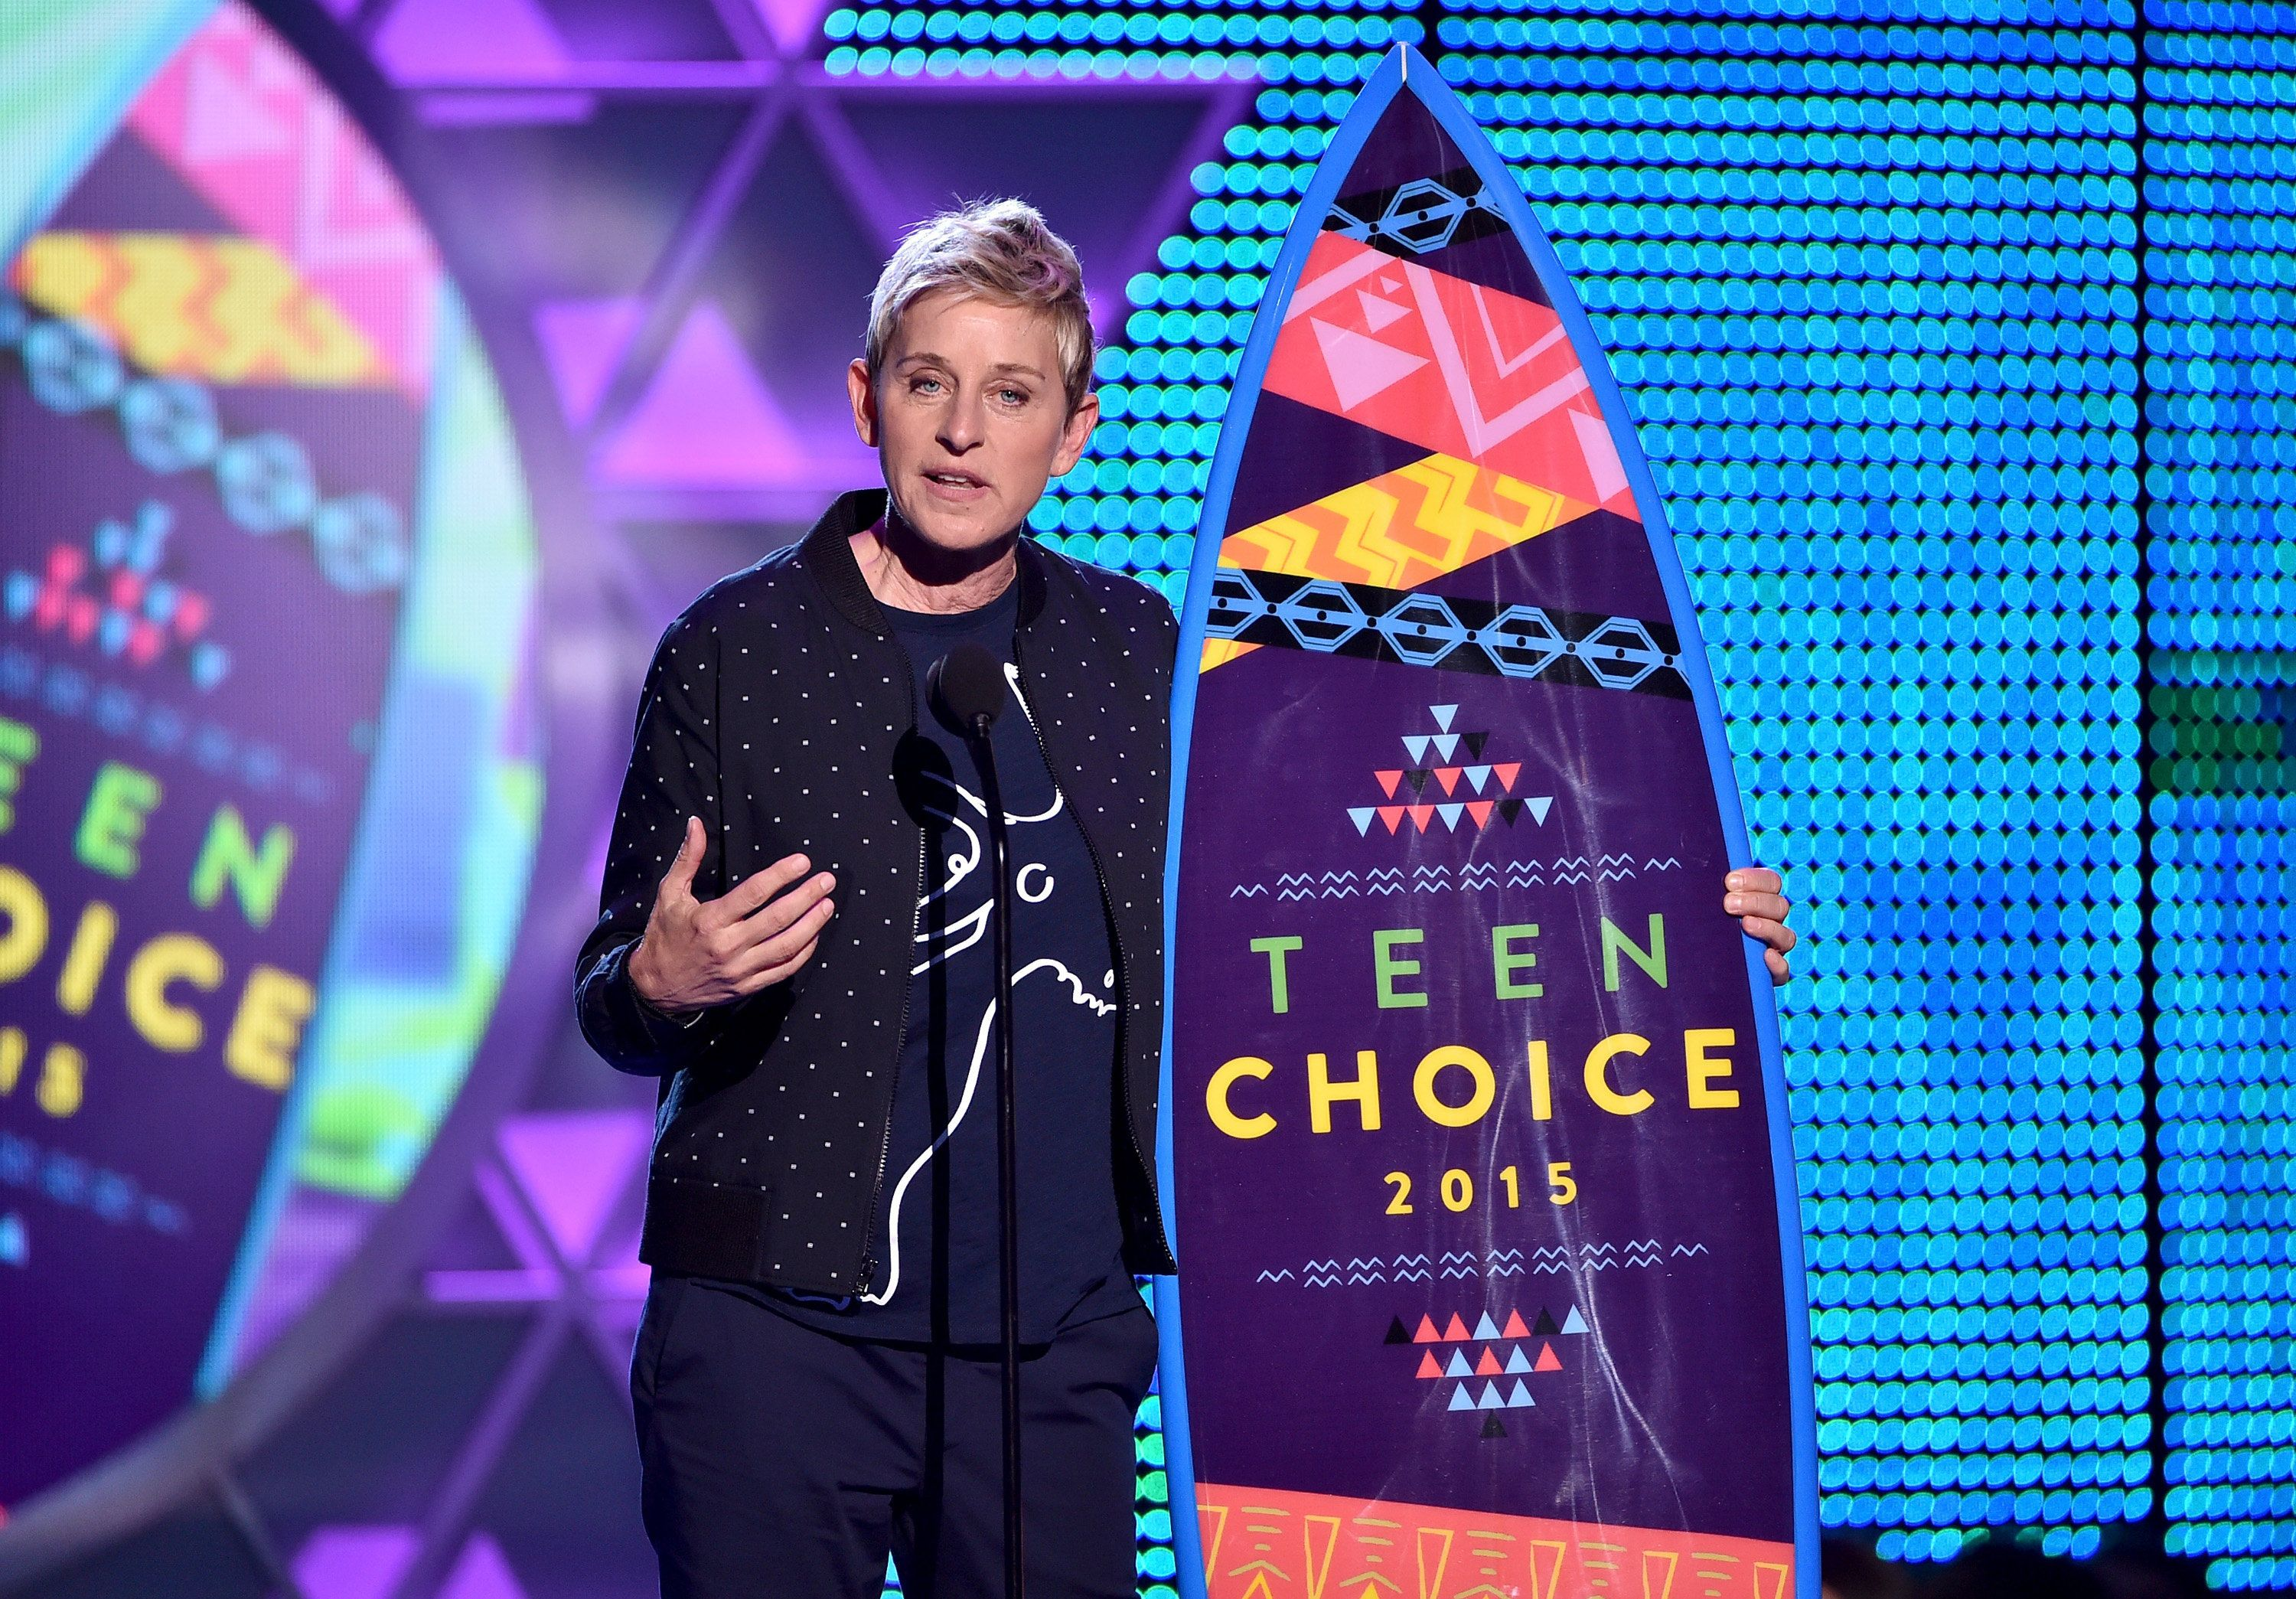 LOS ANGELES, CA - AUGUST 16:  TV personality Ellen DeGeneres accepts the Choice Comedian Award  during the Teen Choice Awards 2015 at the USC Galen Center on August 16, 2015 in Los Angeles, California.  (Photo by Kevin Winter/Getty Images)